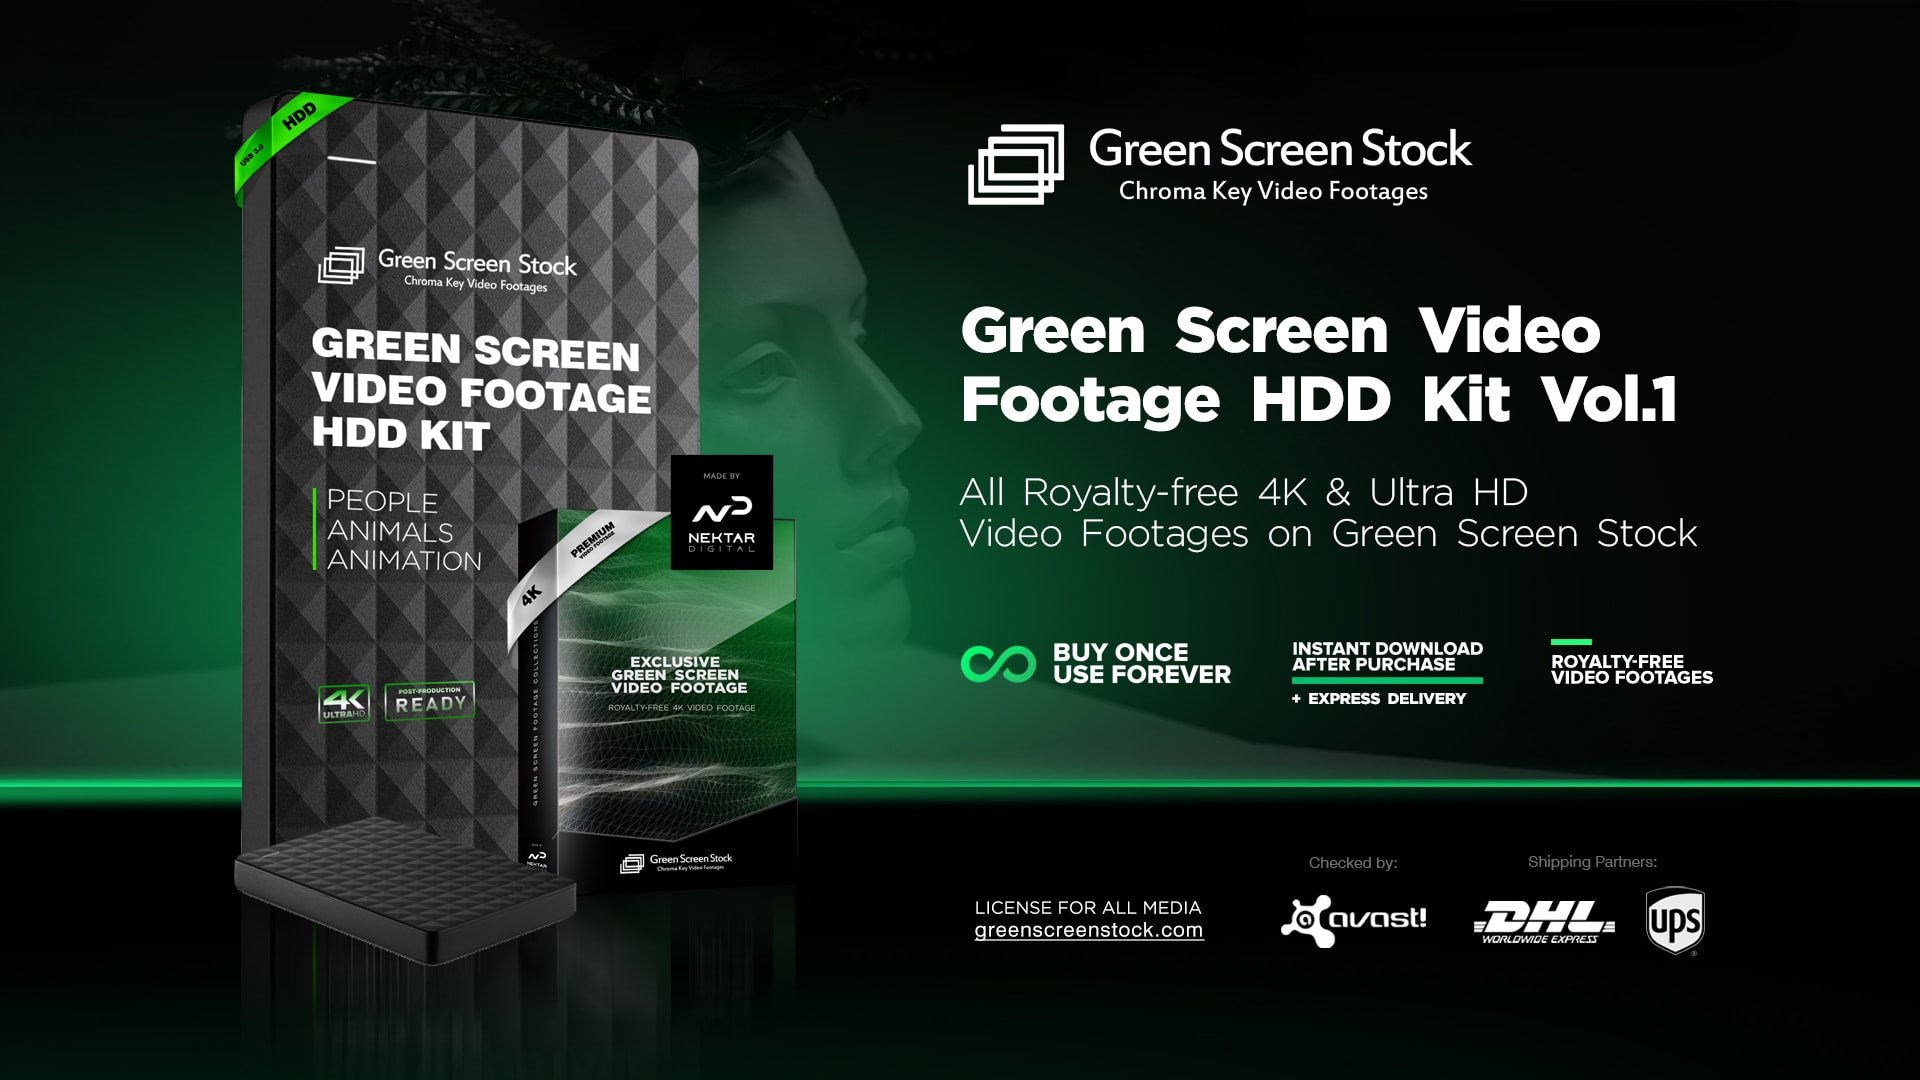 HDD-Green-Screen-VIdeo-Footage-Ki